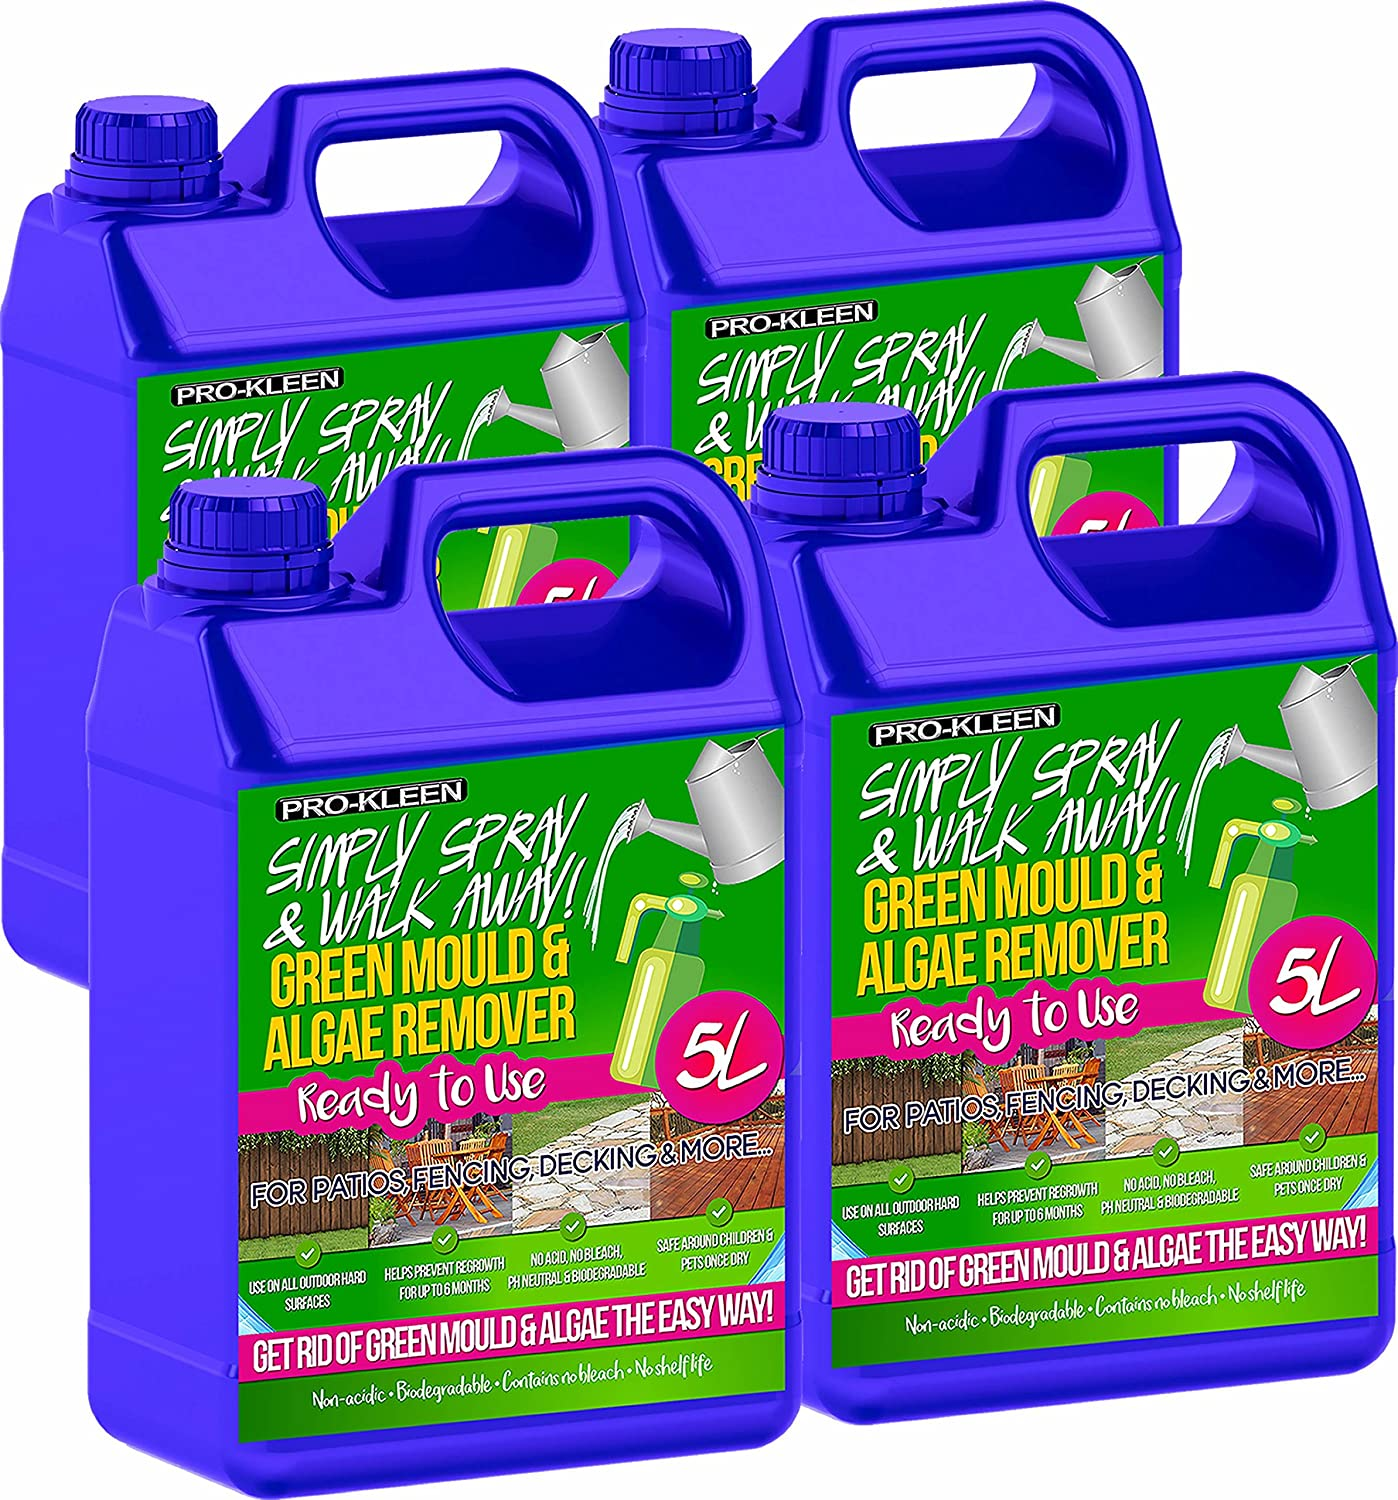 Pro-Kleen Ready to Use Simply Spray & Walk Away (4 x 5 Litres) Green Mould & Algae Remover for Patio, Fencing, Decking and more!